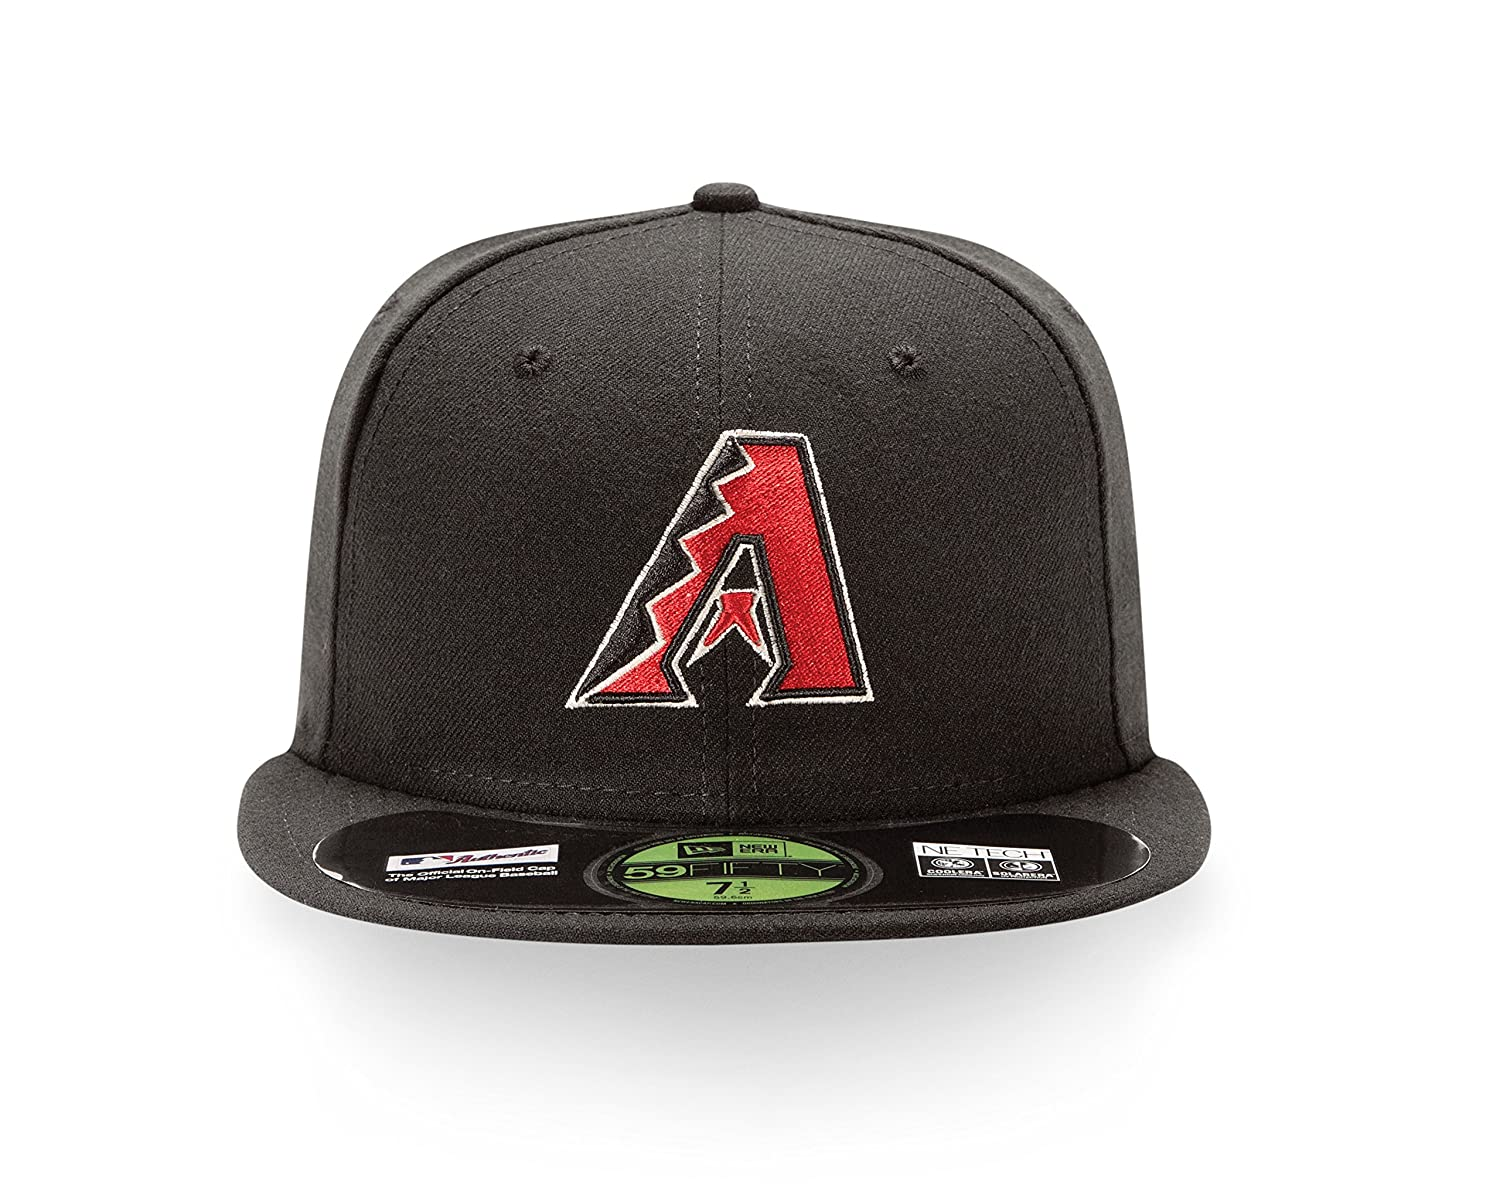 83b5414e7ca Amazon.com   New Era MLB Game Authentic Collection On Field 59FIFTY Fitted  Cap   Sports   Outdoors